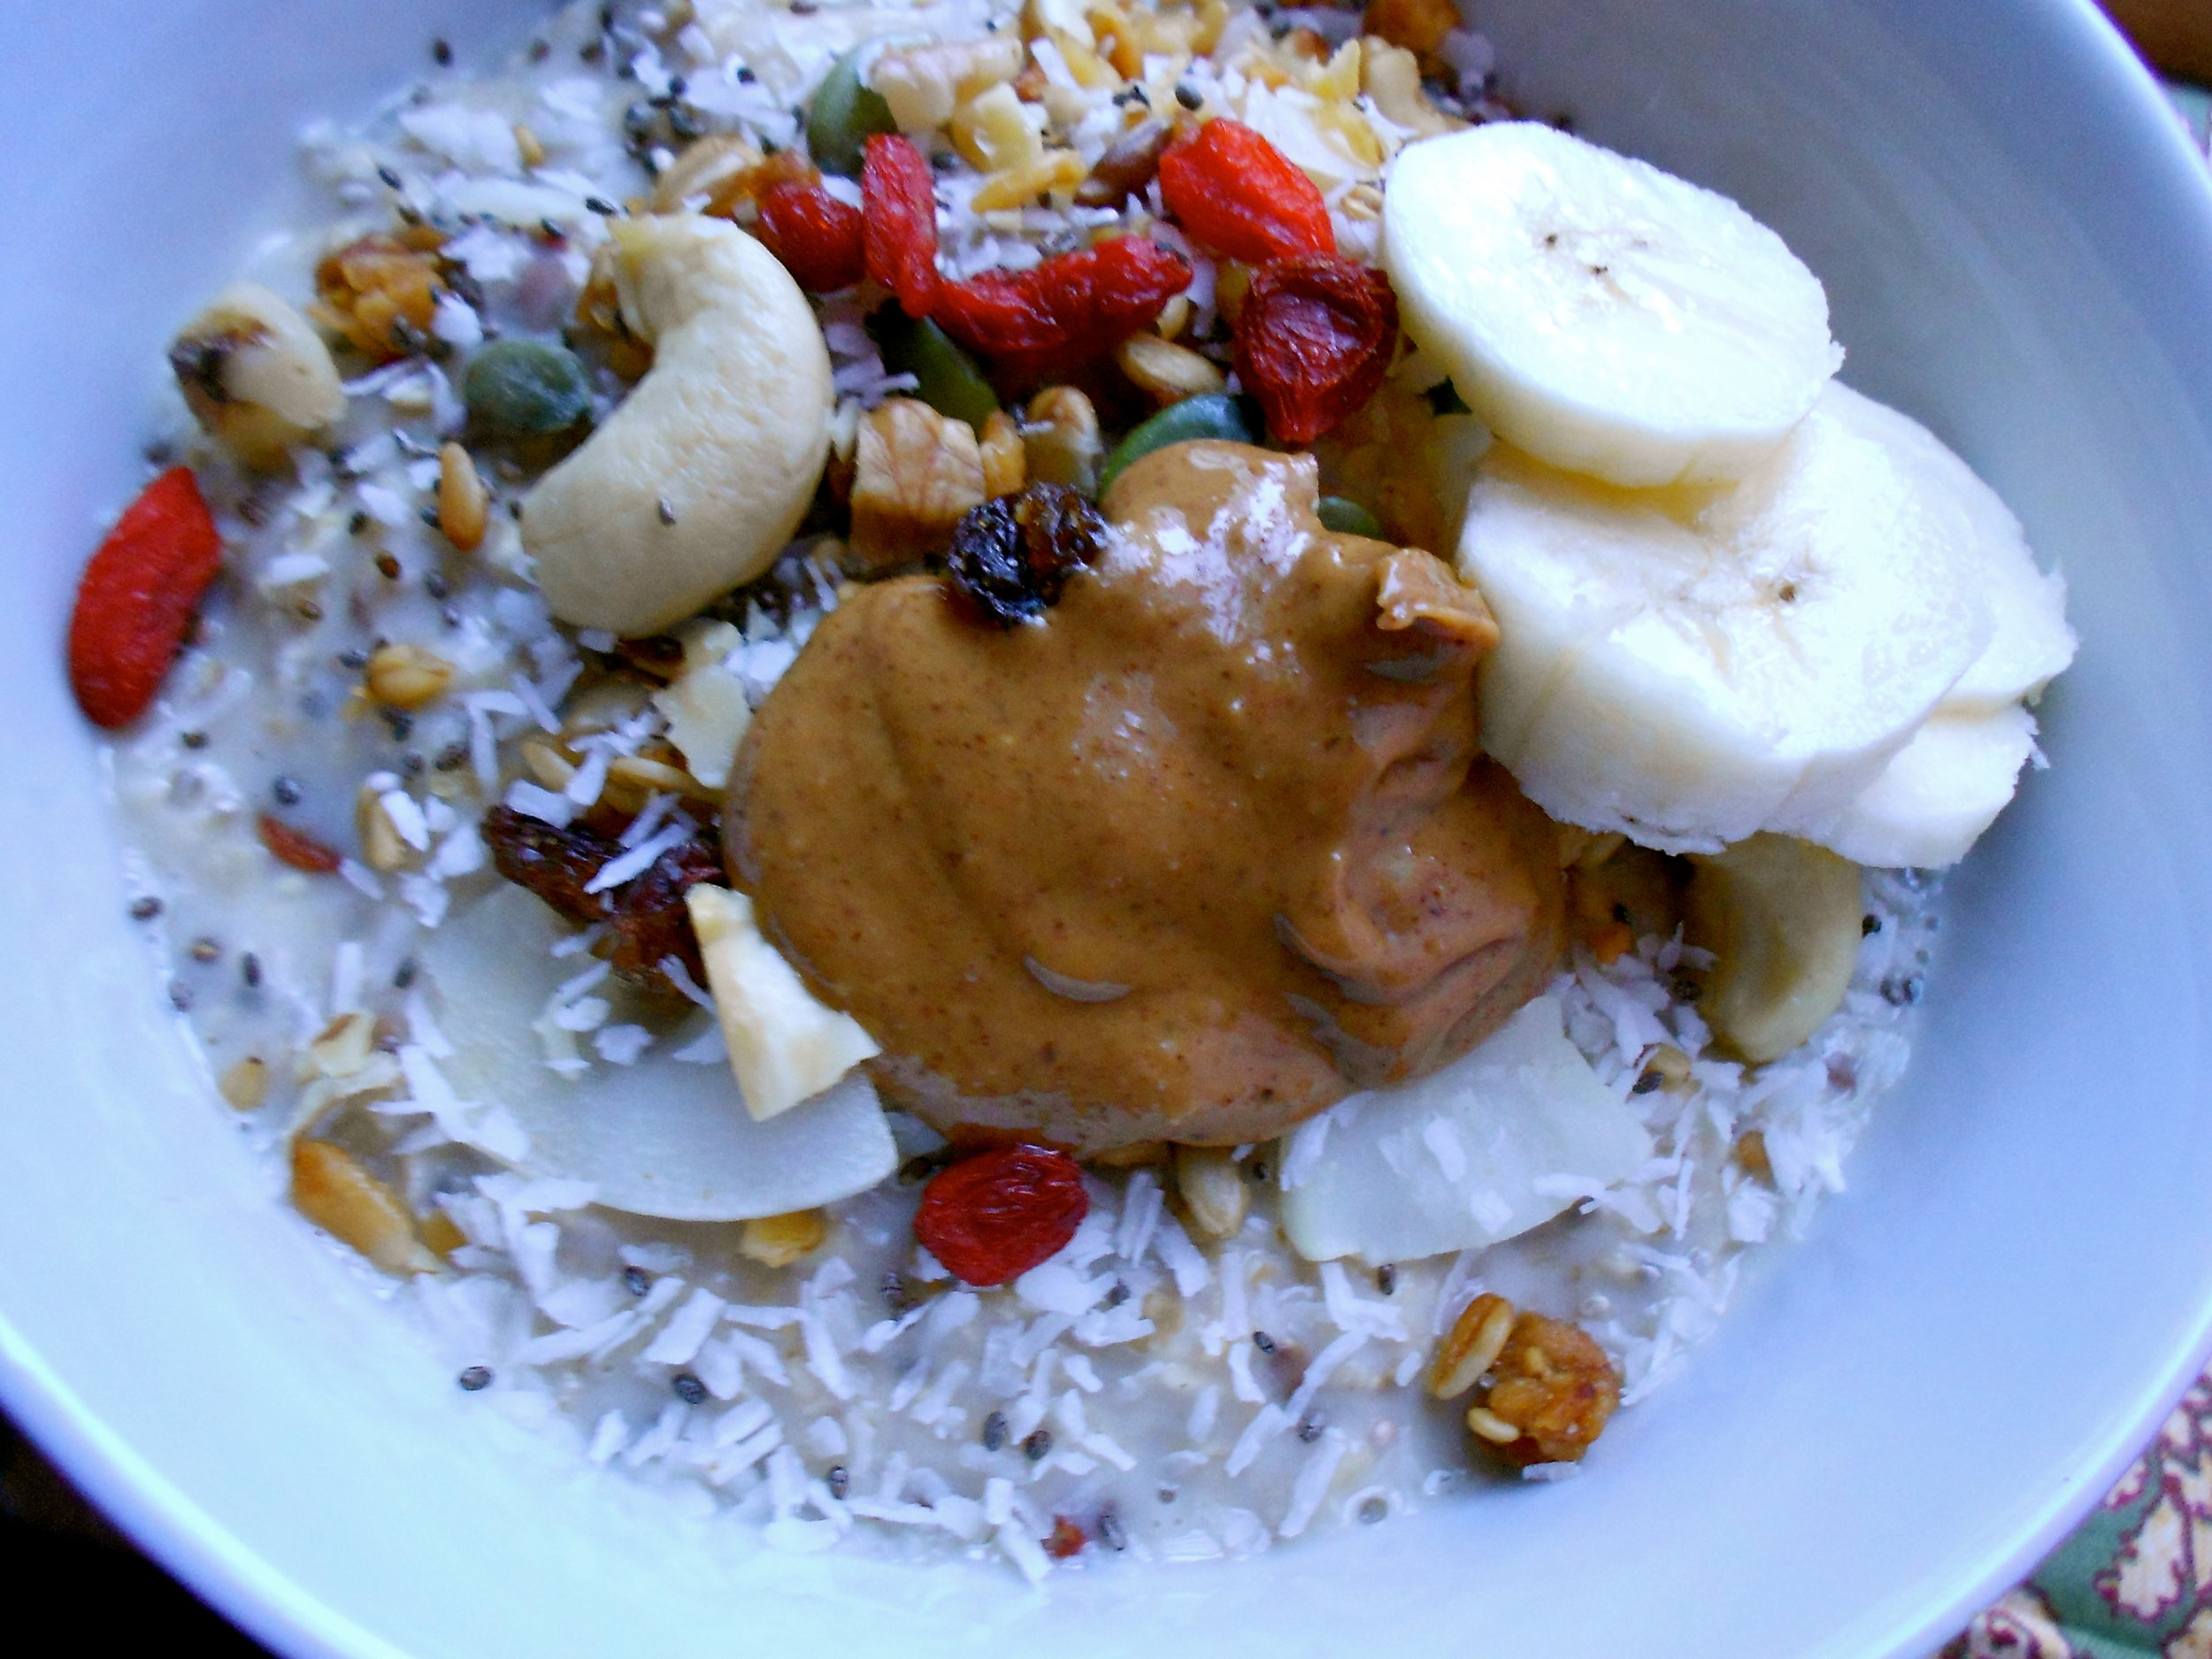 Day 3:  Make ahead O atmeal Chia Fruit & Nut Bowl